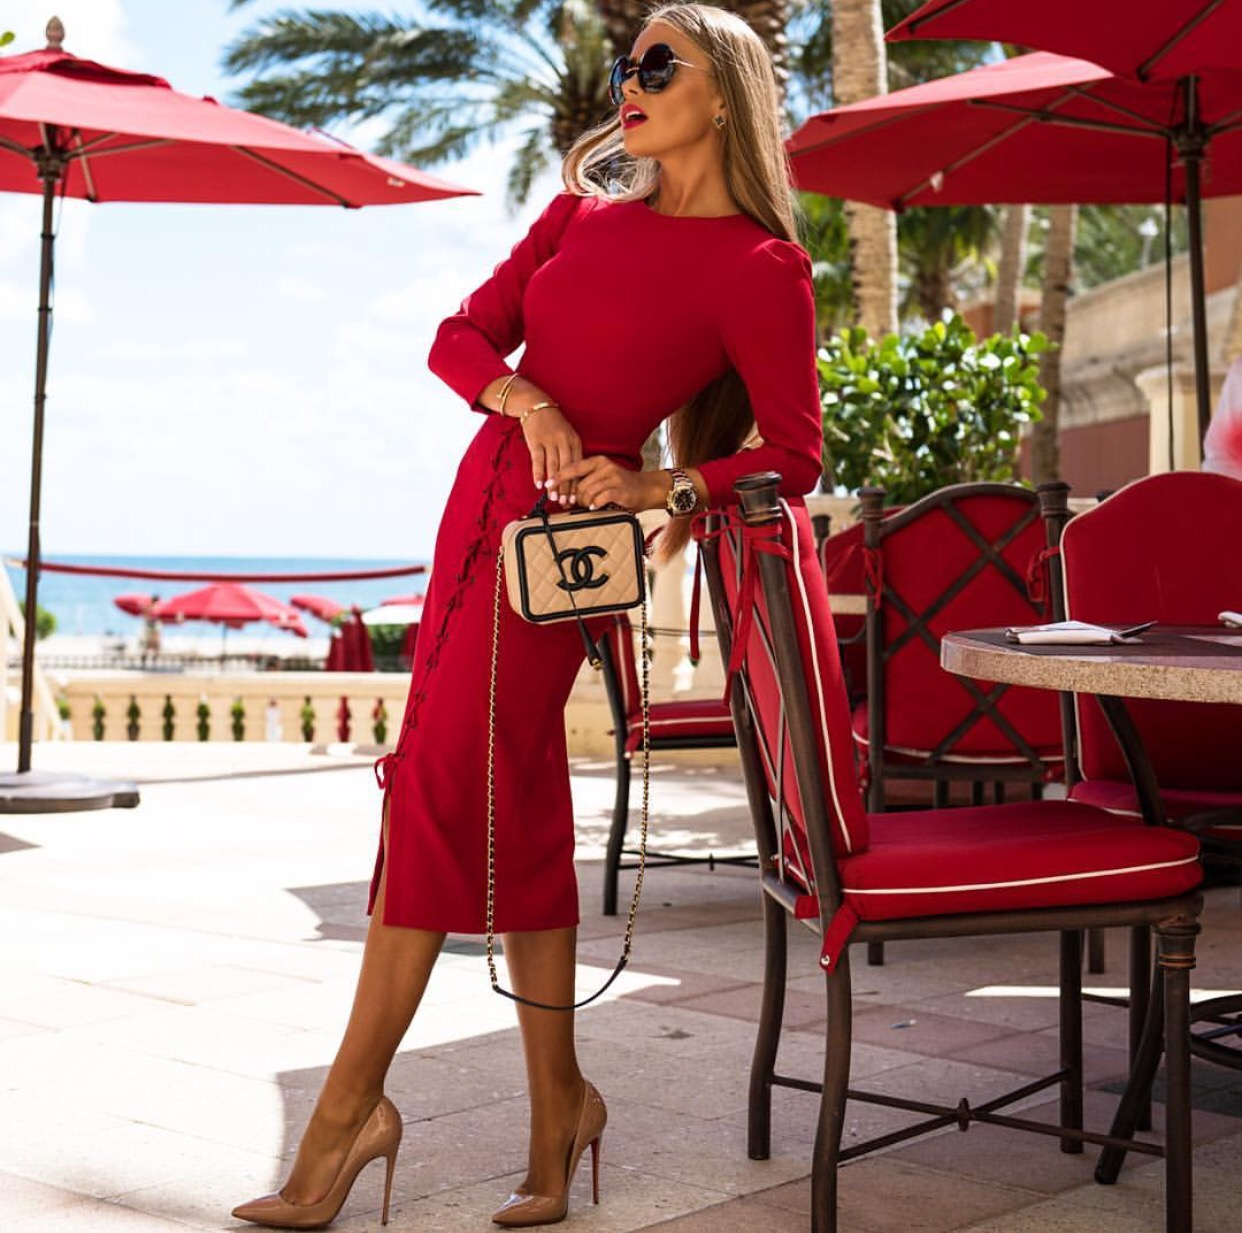 Red lace up dress